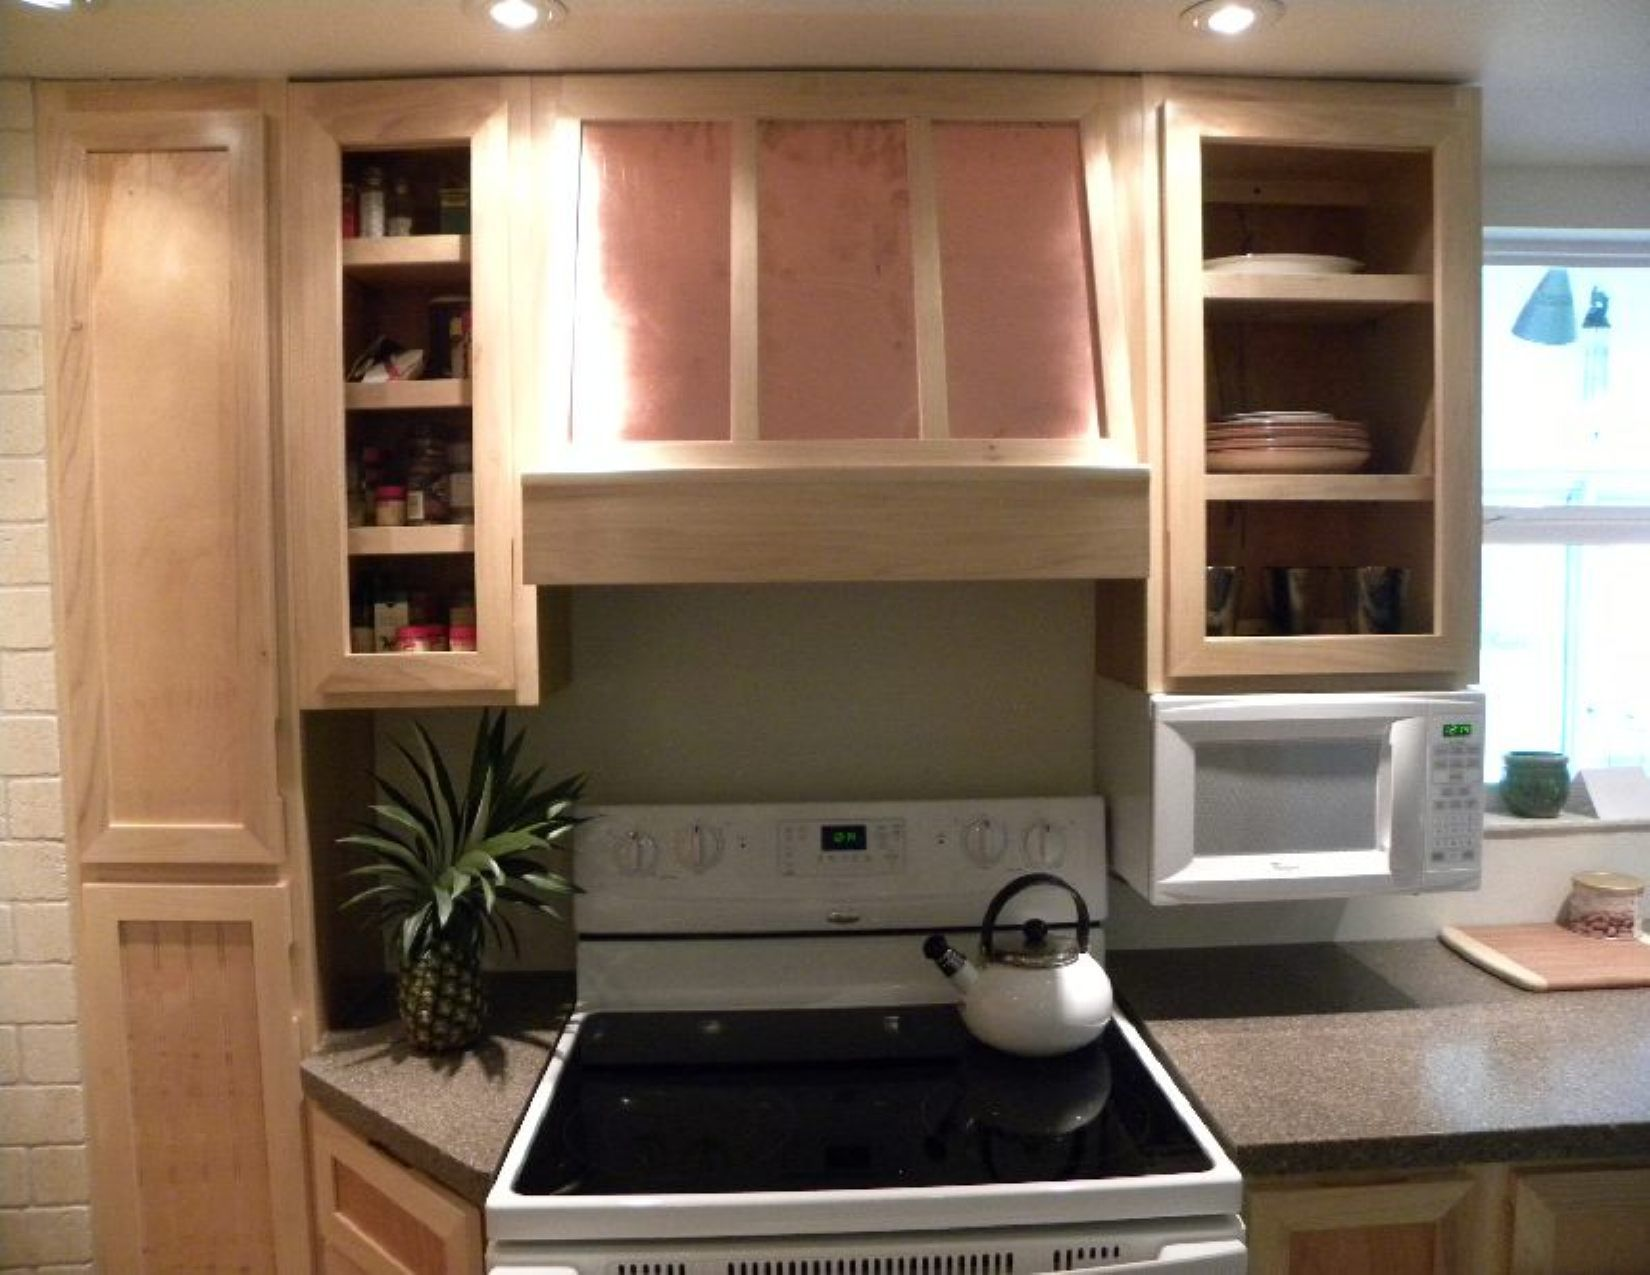 These Are Some Of The Cabinets And Range Hood Cabinet/cover I Built.